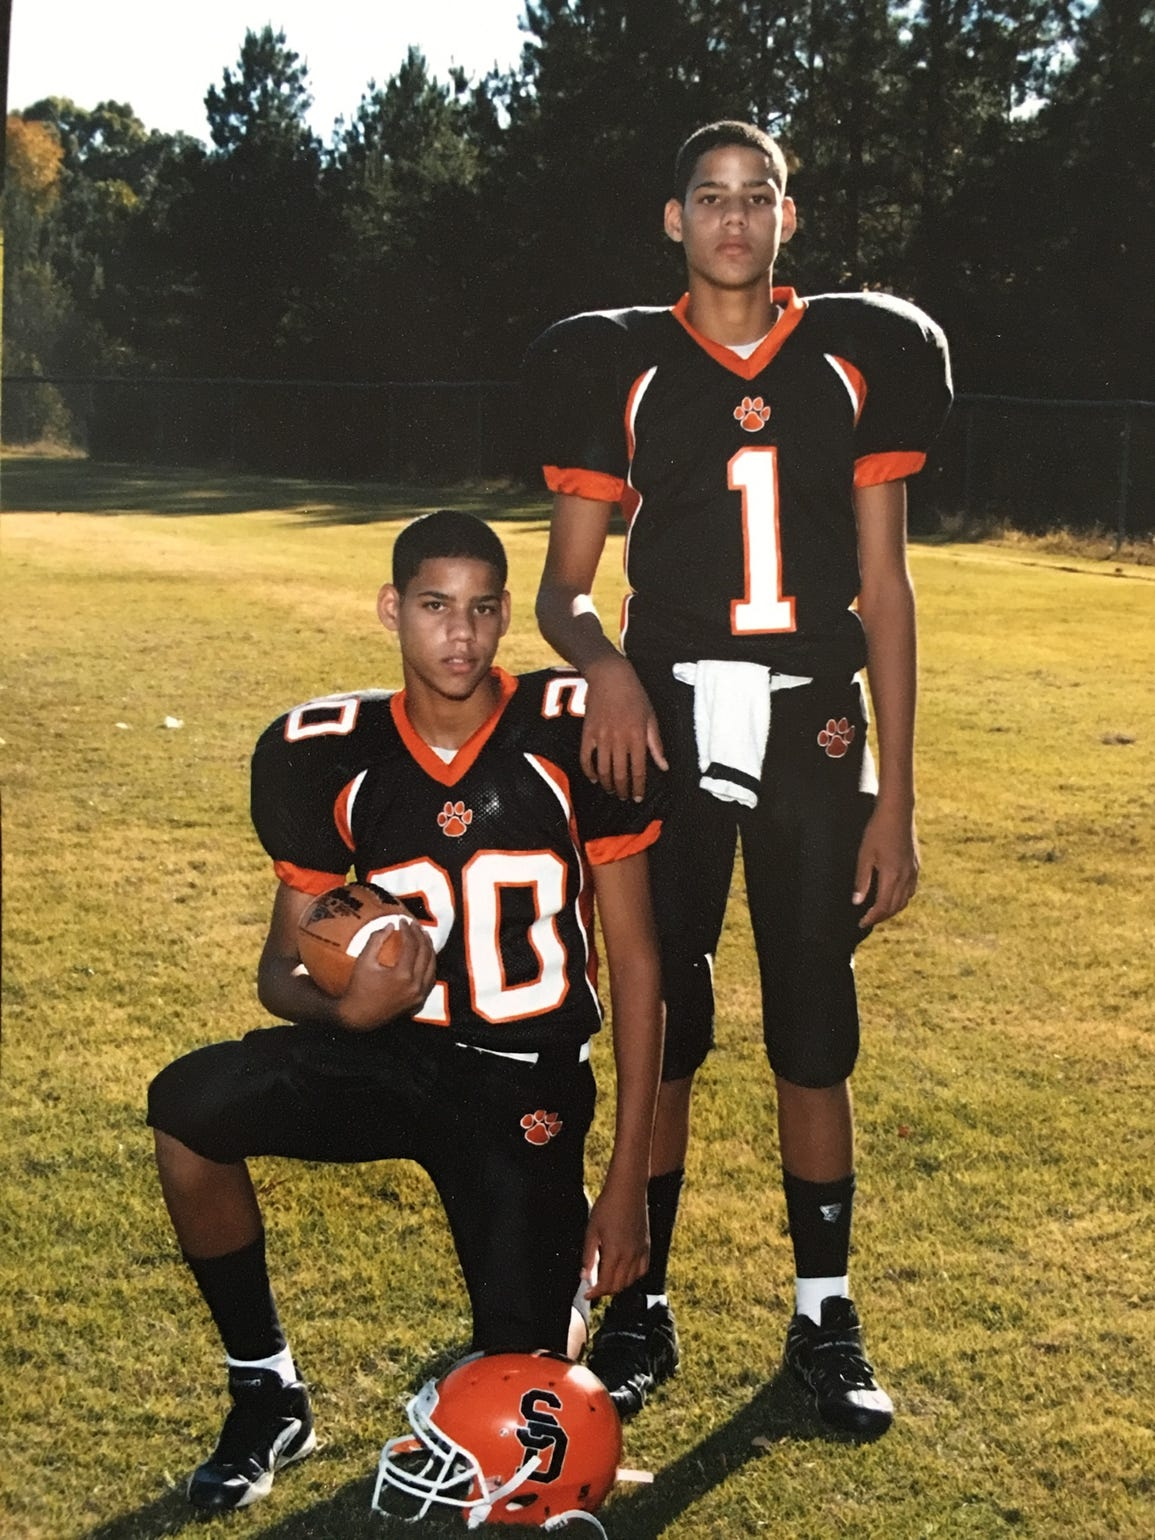 Caleb and Cody Martin excelled in football and baseball,